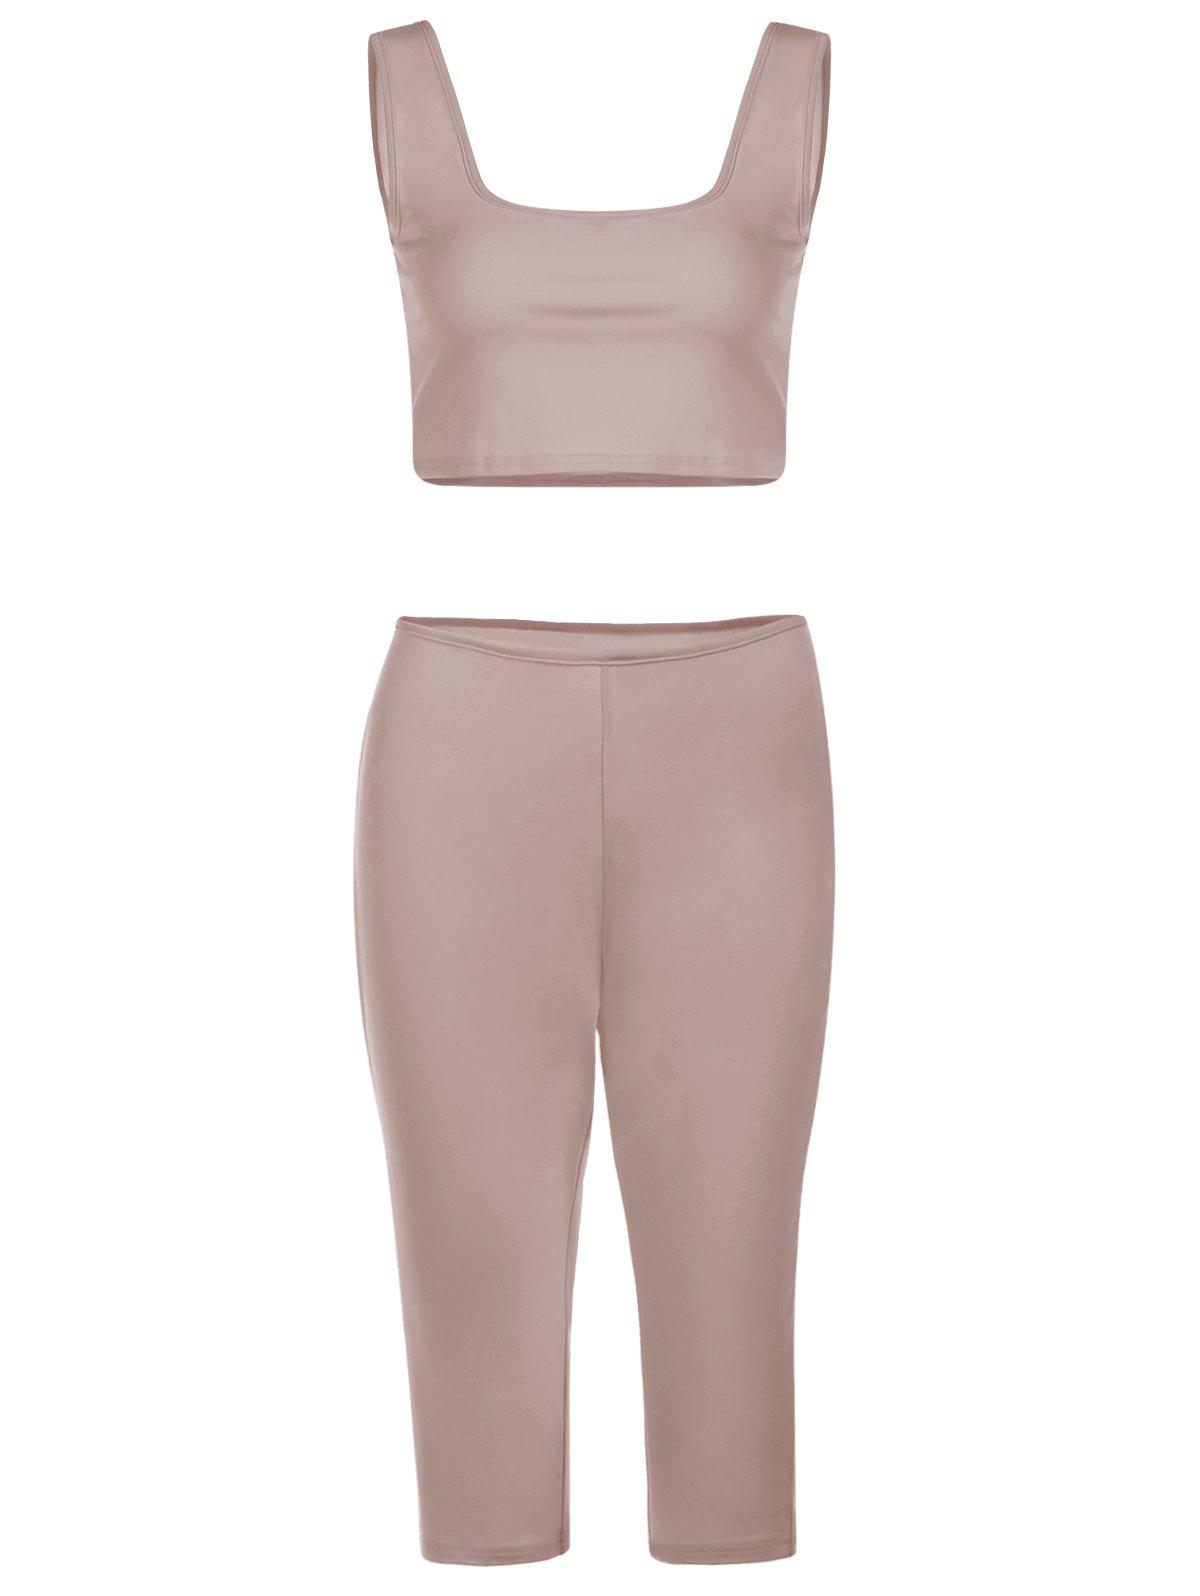 Chic Sleeveless U-Neck Crop Top + Skinny Pure Color Pants Women's Twinset - APRICOT M